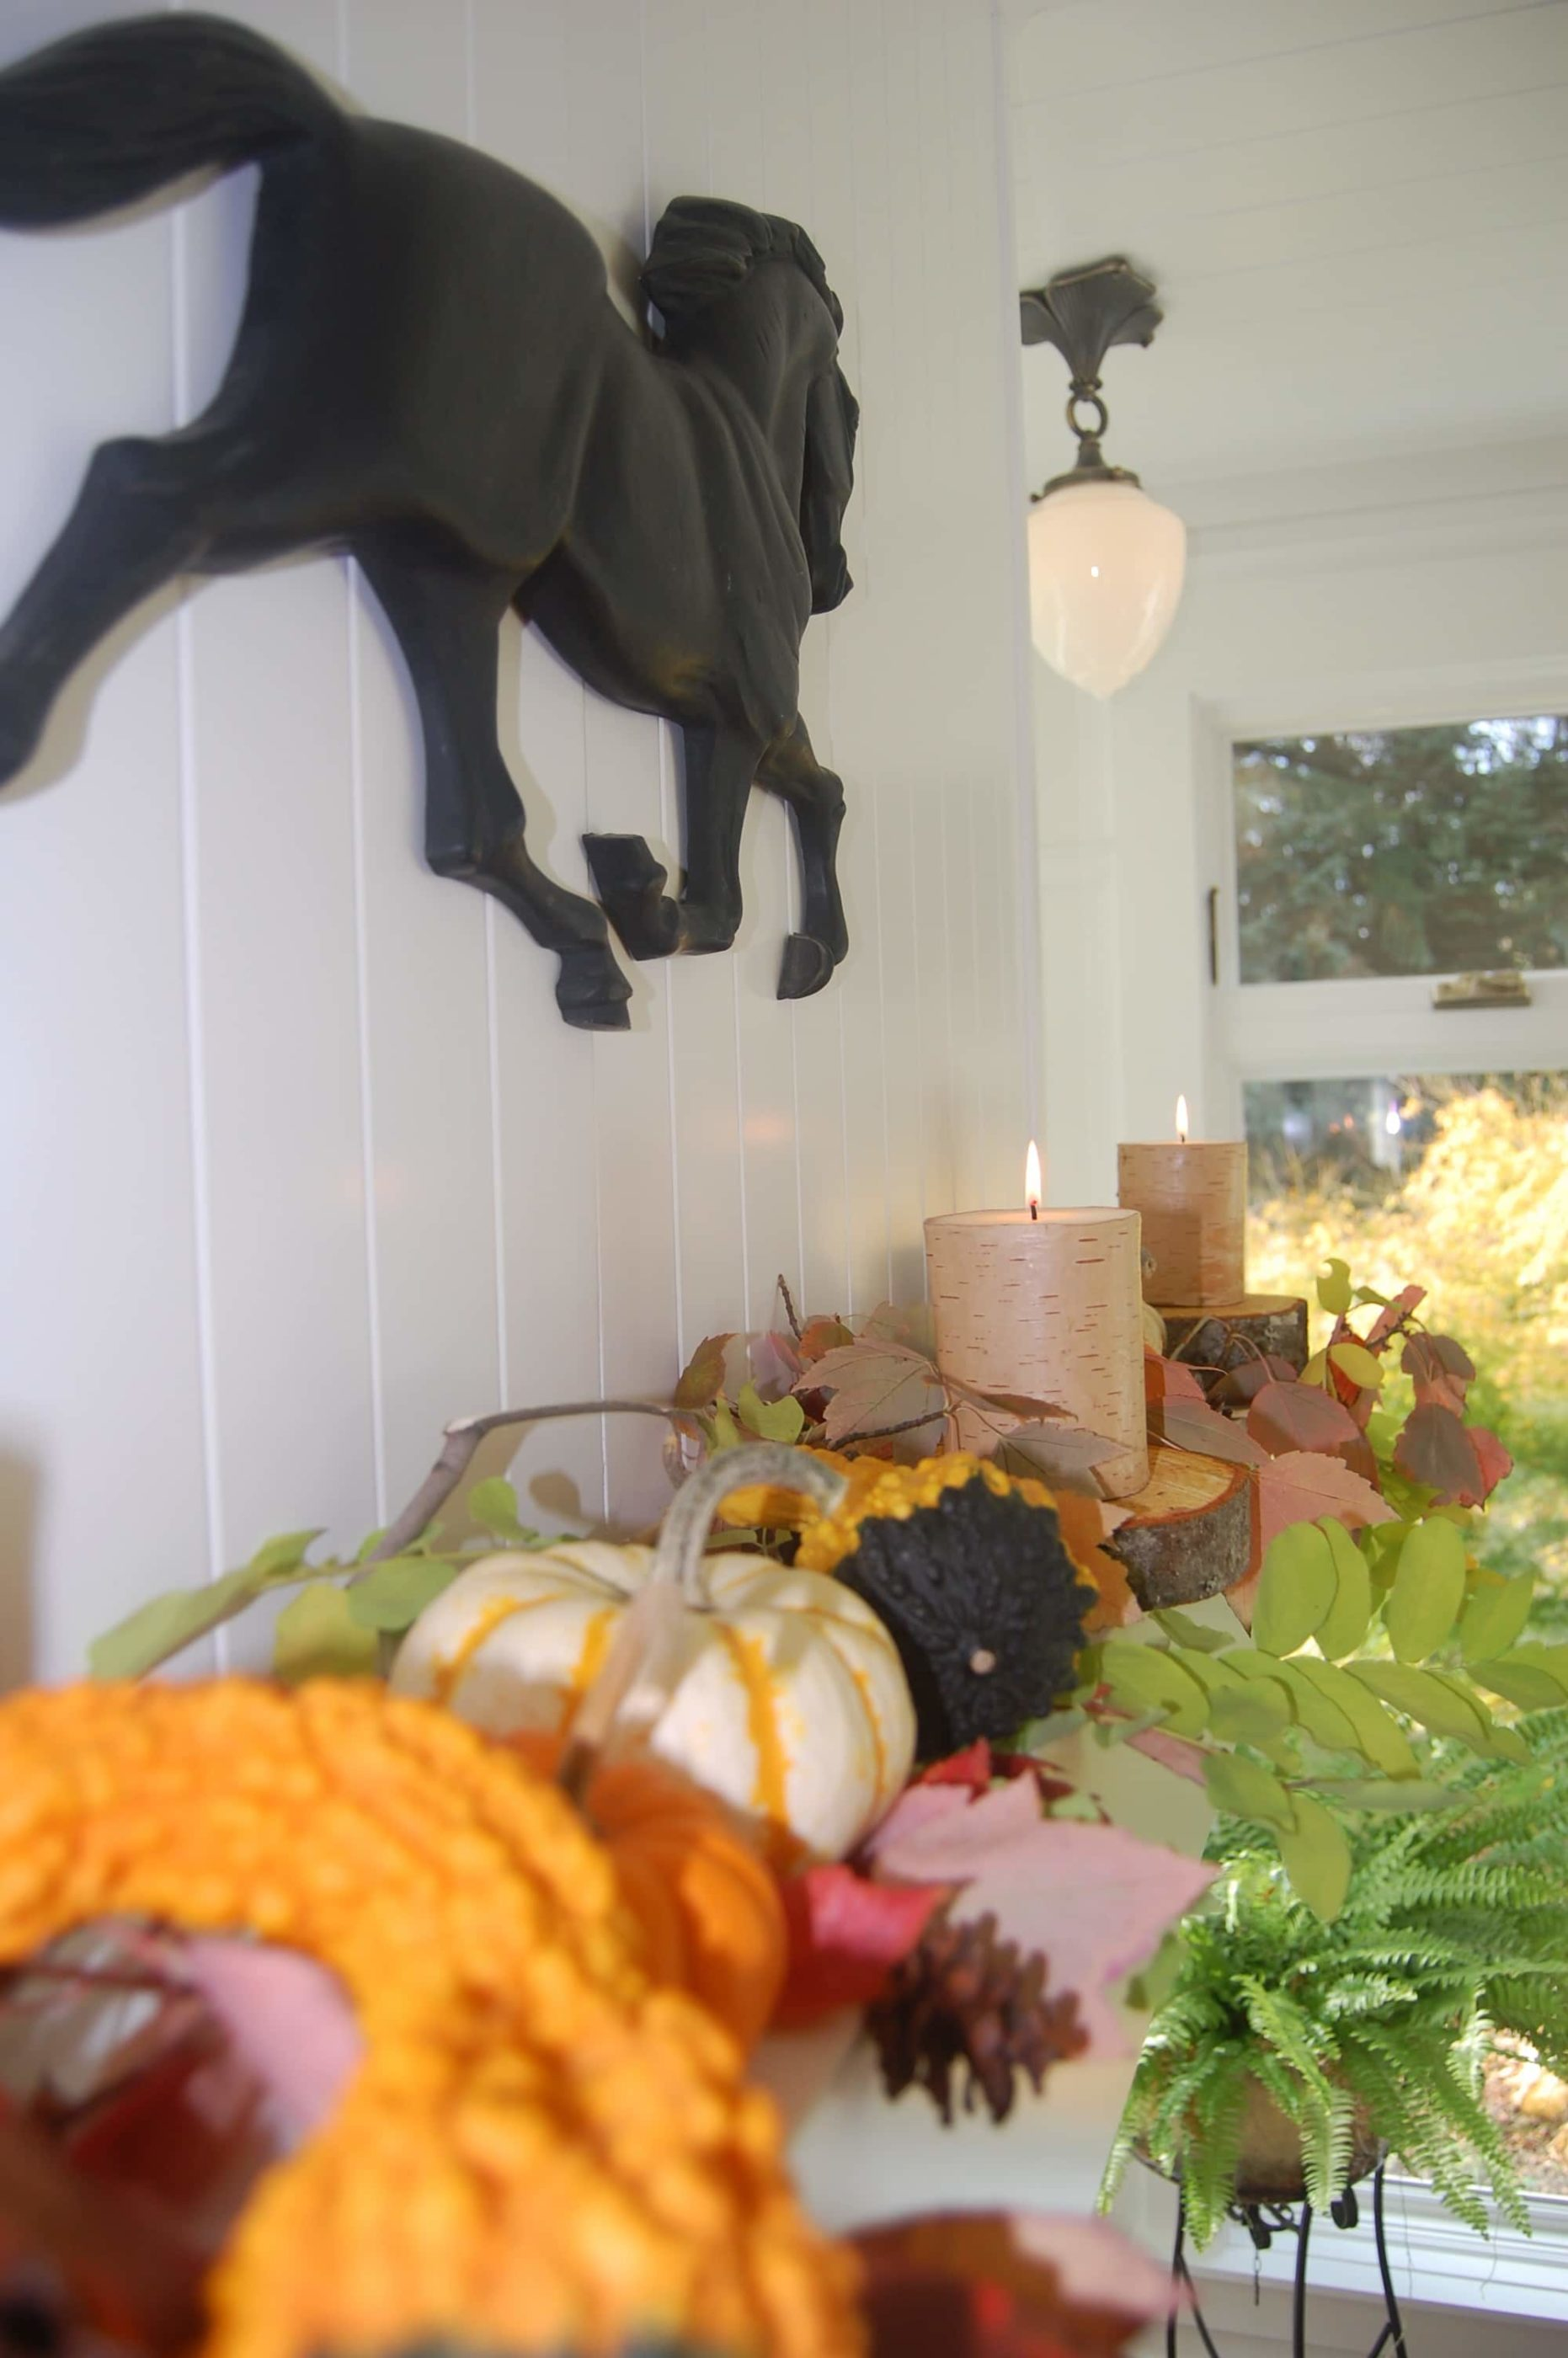 Fall Decorations with Iron horse and Pumpkins